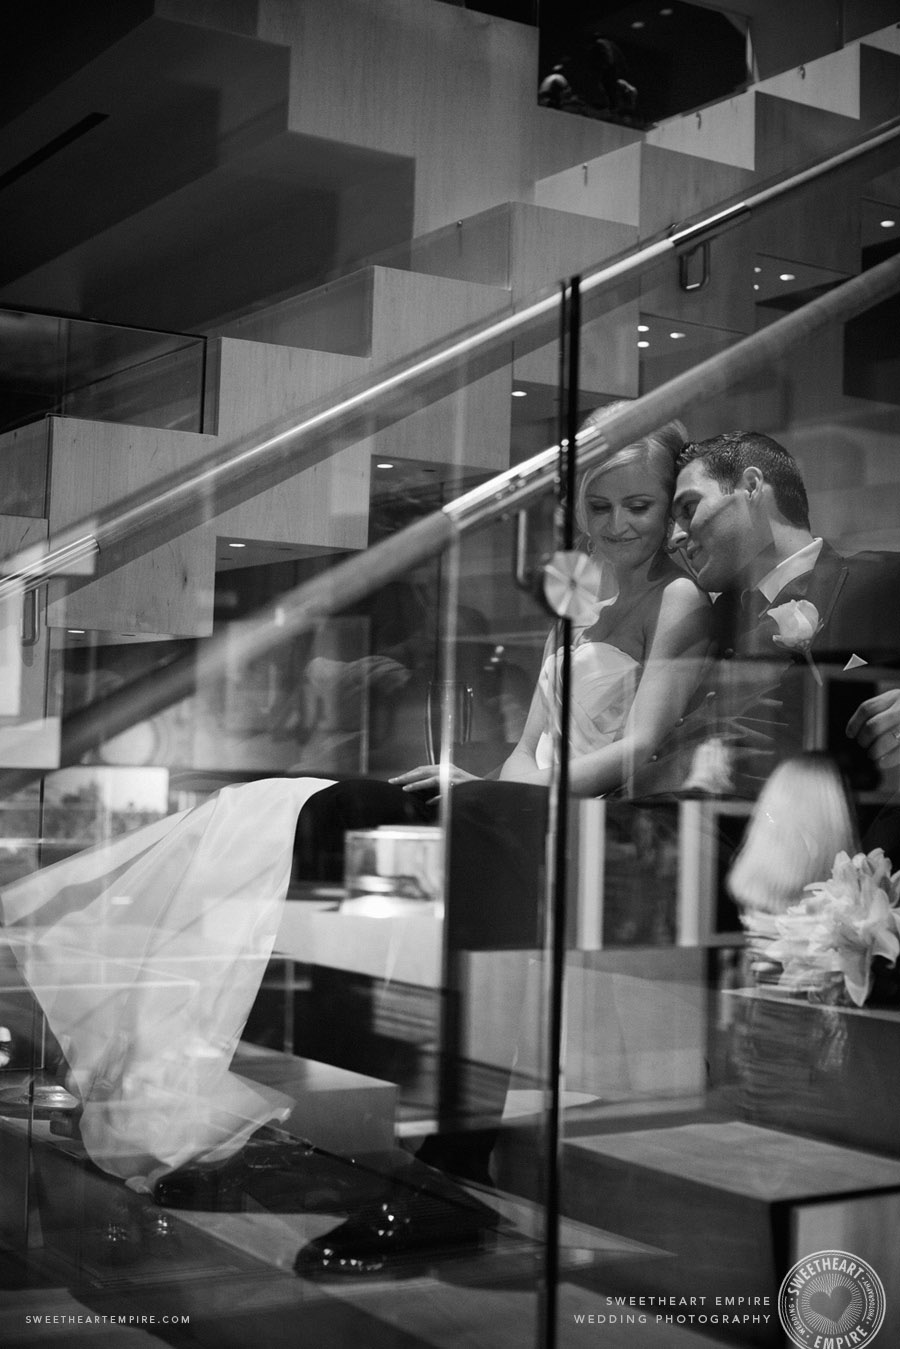 Bata-Shoe-Museum-Toronto-Wedding_35.jpg